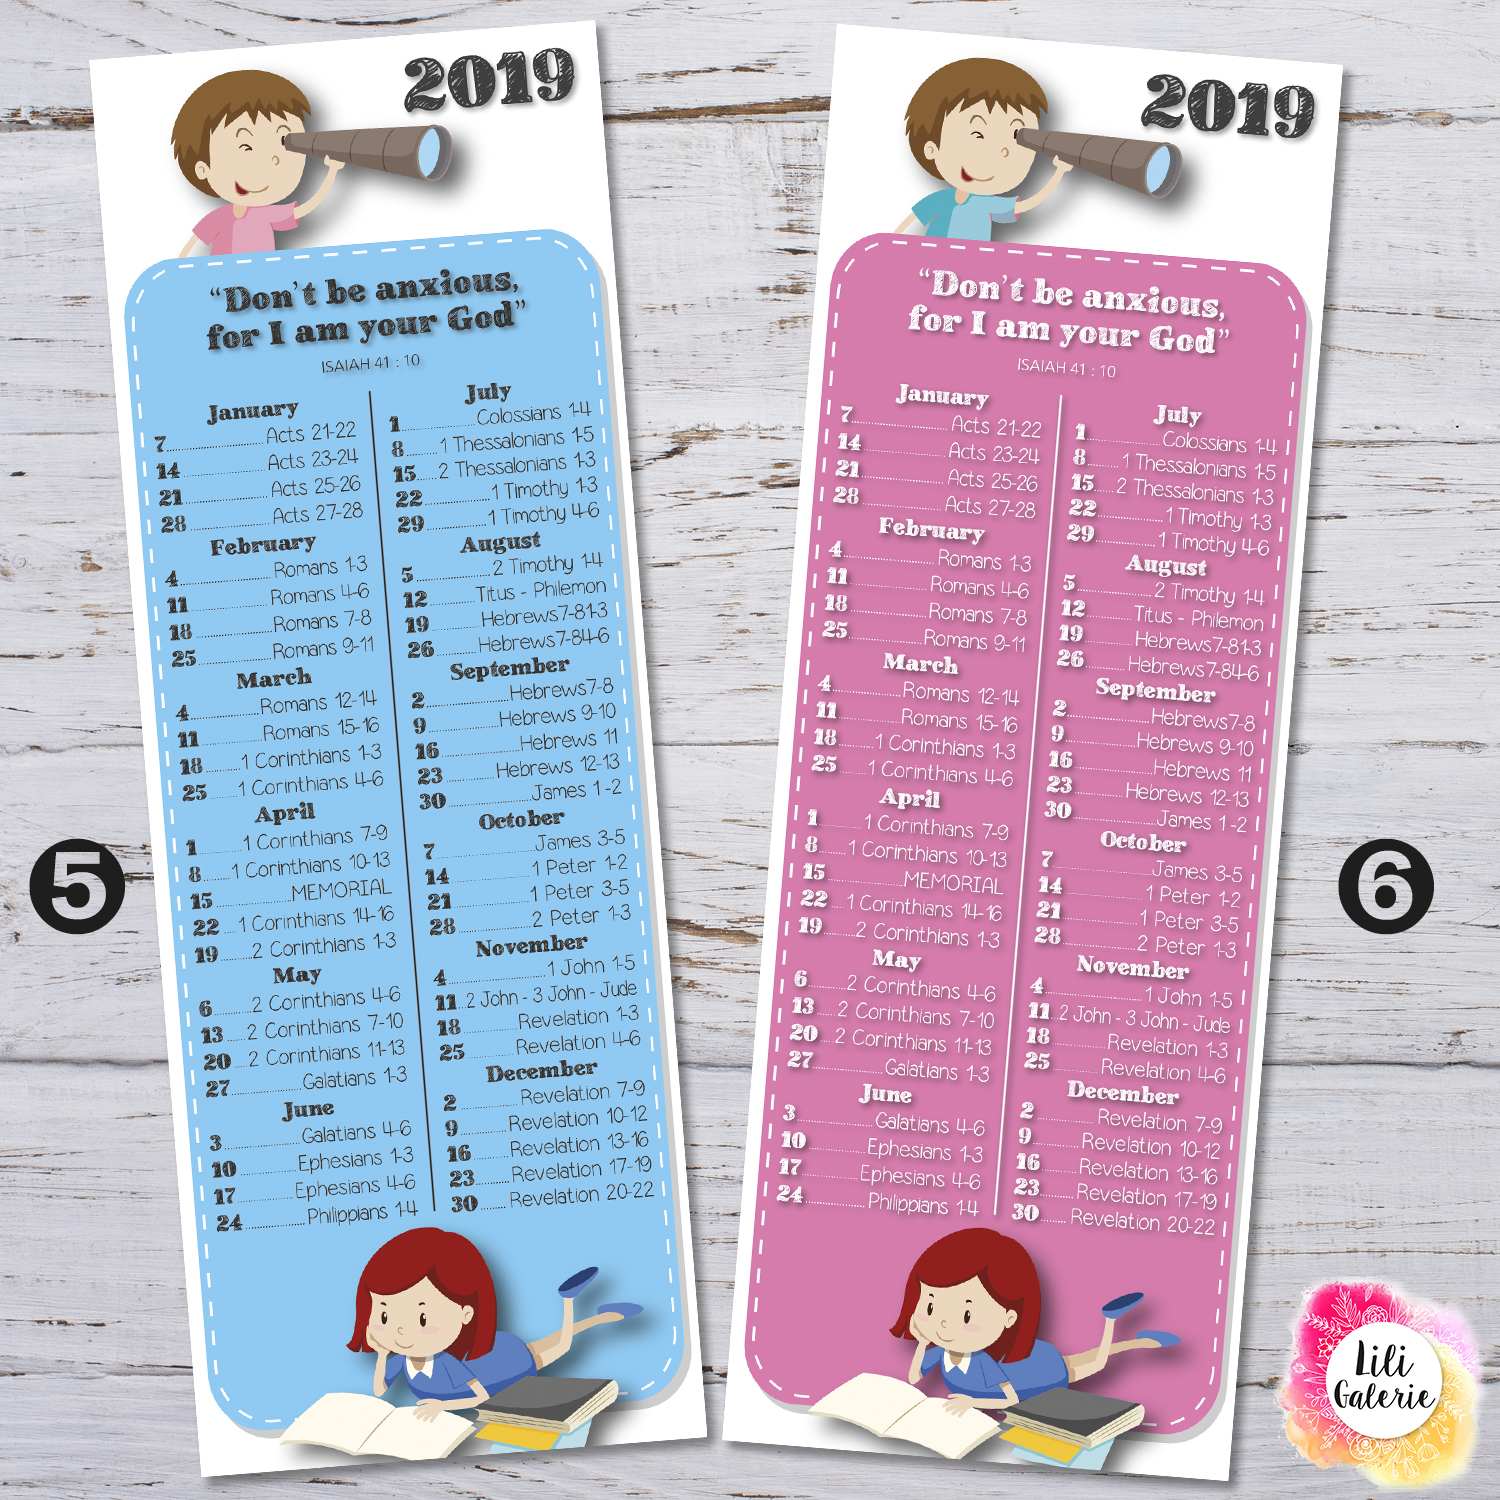 Bookmarks 2019 Bible Reading Schedule + Yeartext Children - Printable file